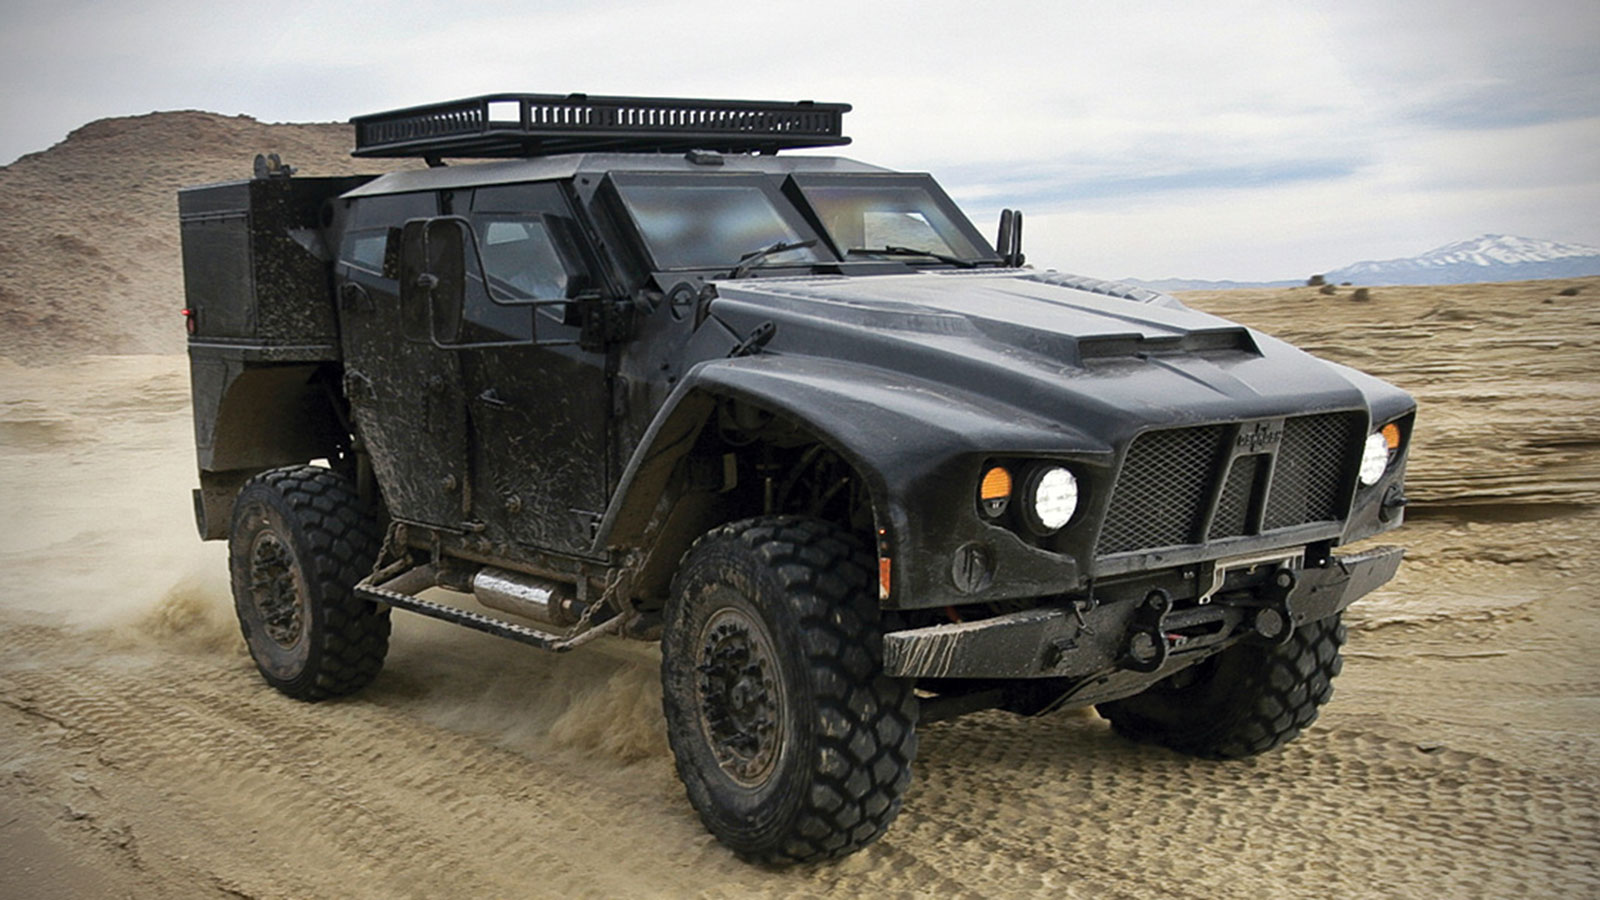 OSHKOSH DEFENSE LCTV MILITARY ATV